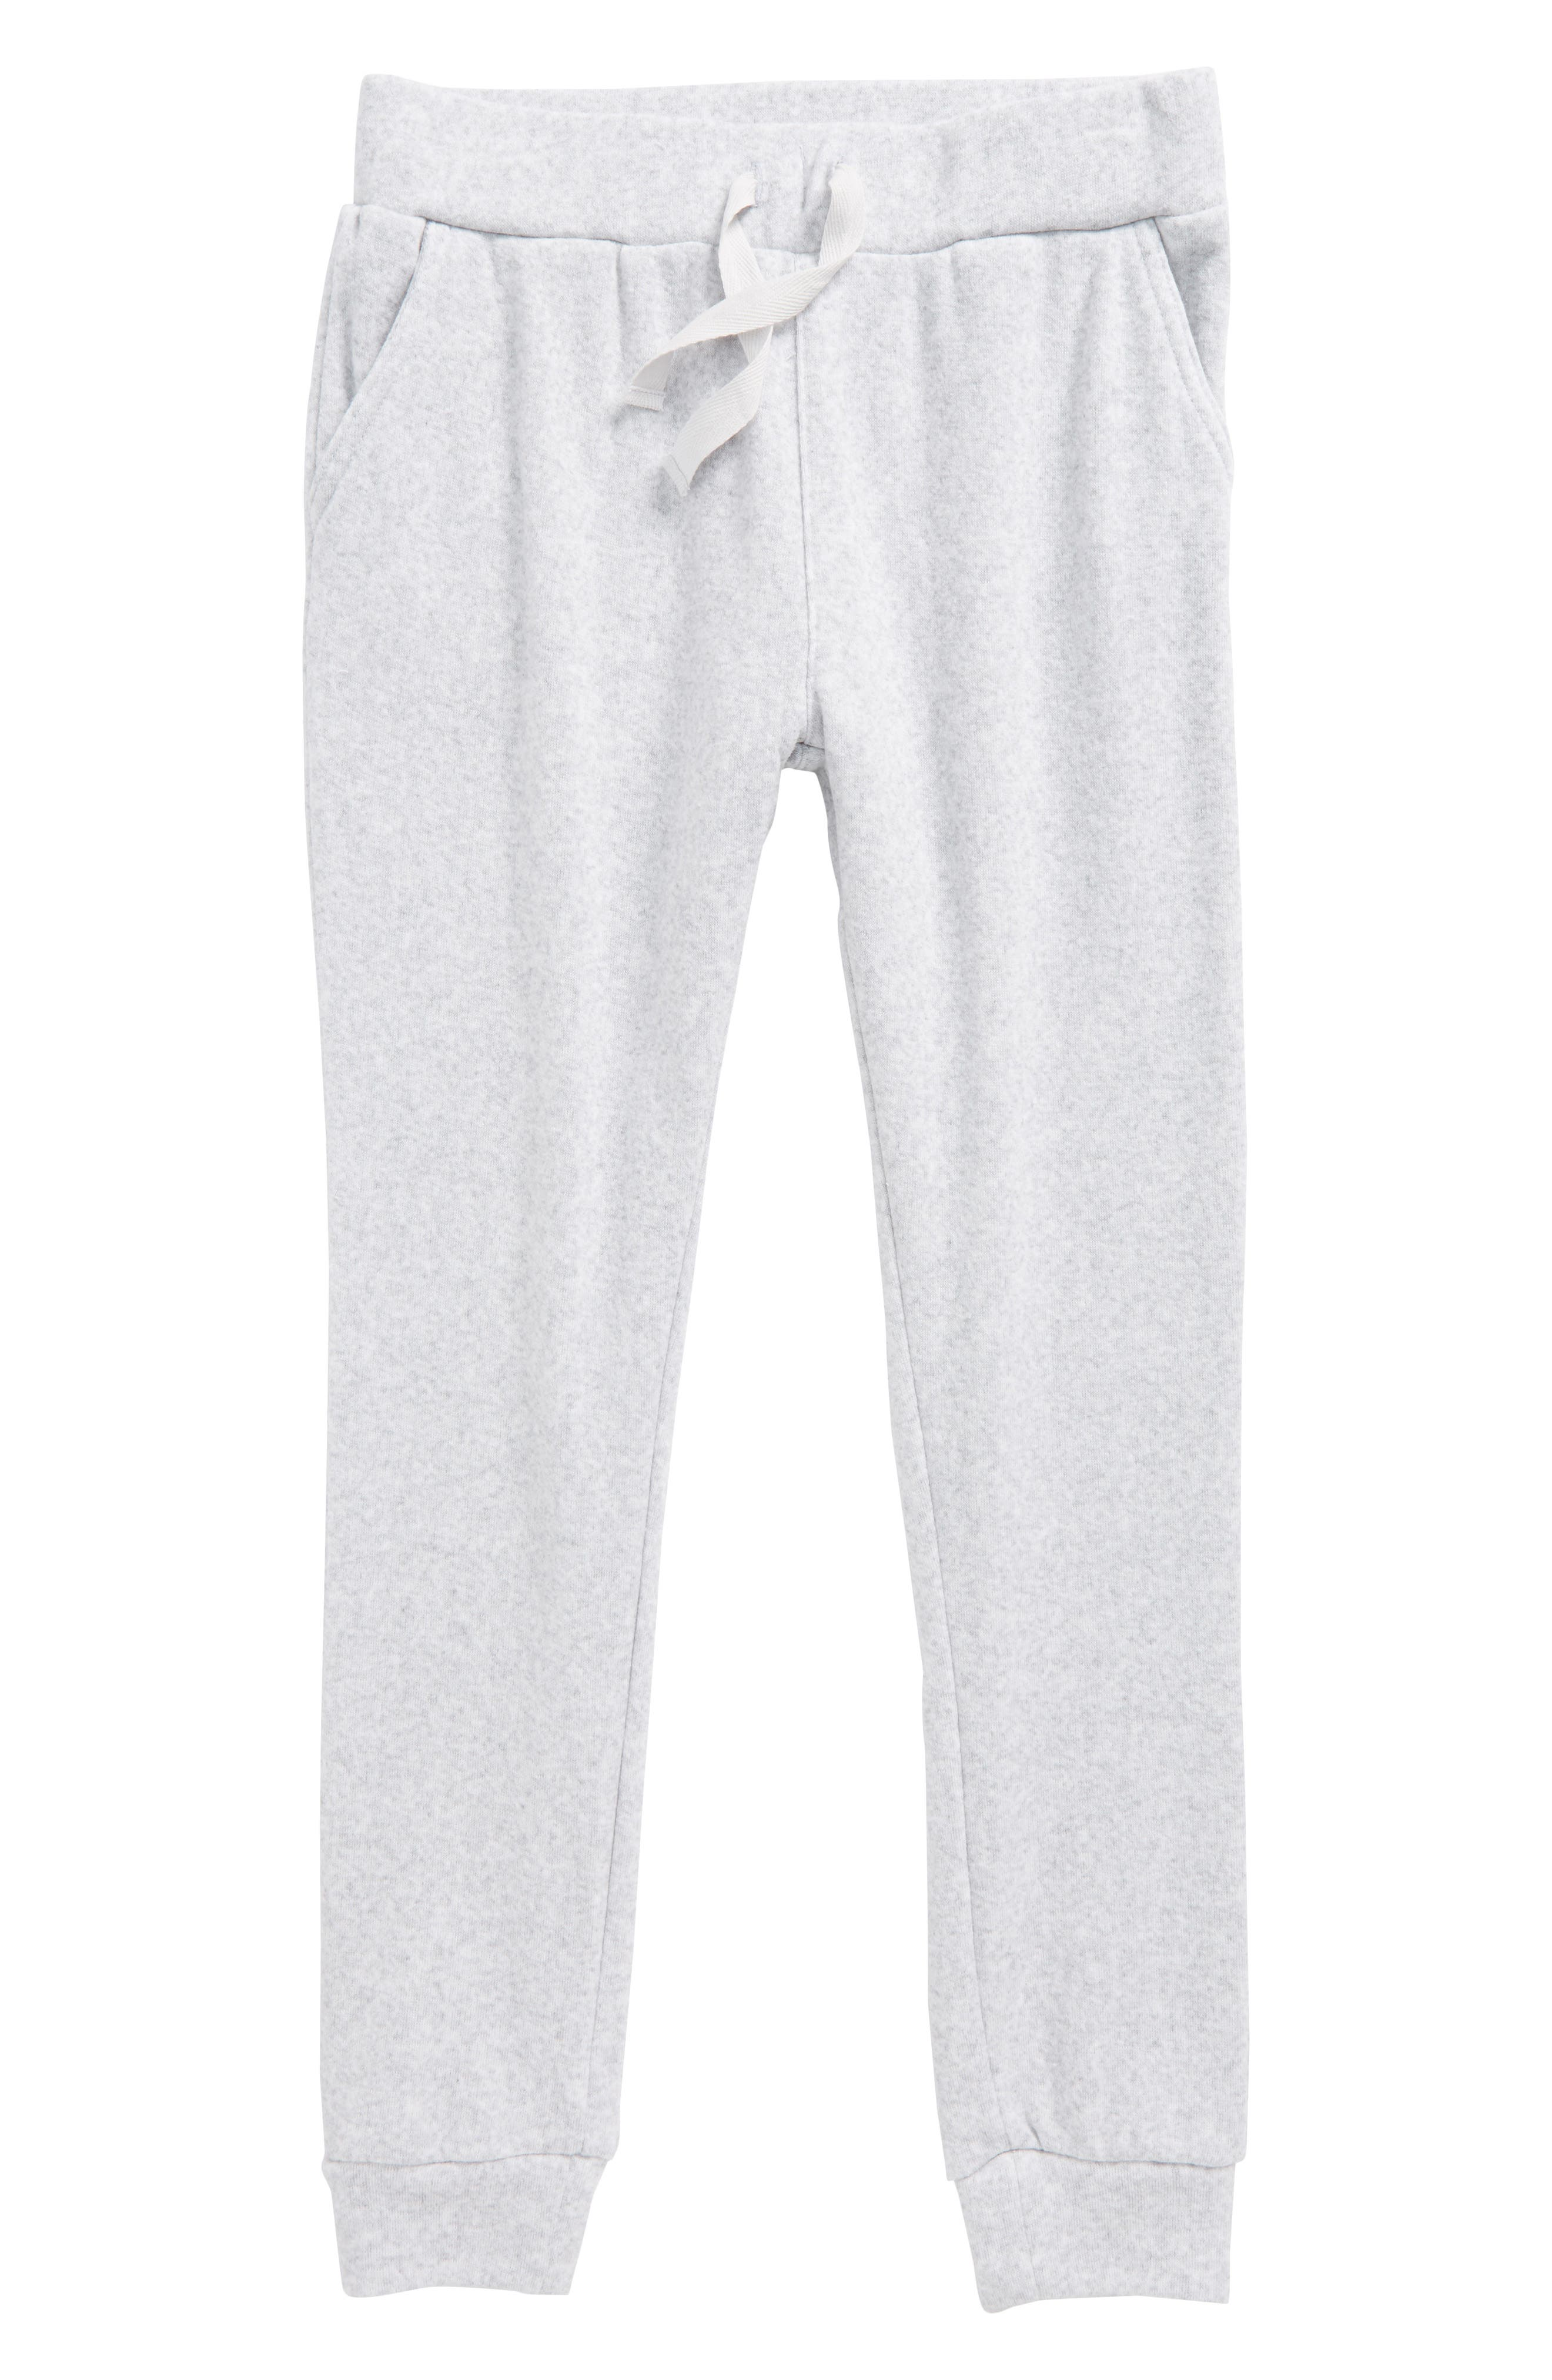 French Terry Jogger Pants,                         Main,                         color, Grey Ash Heather